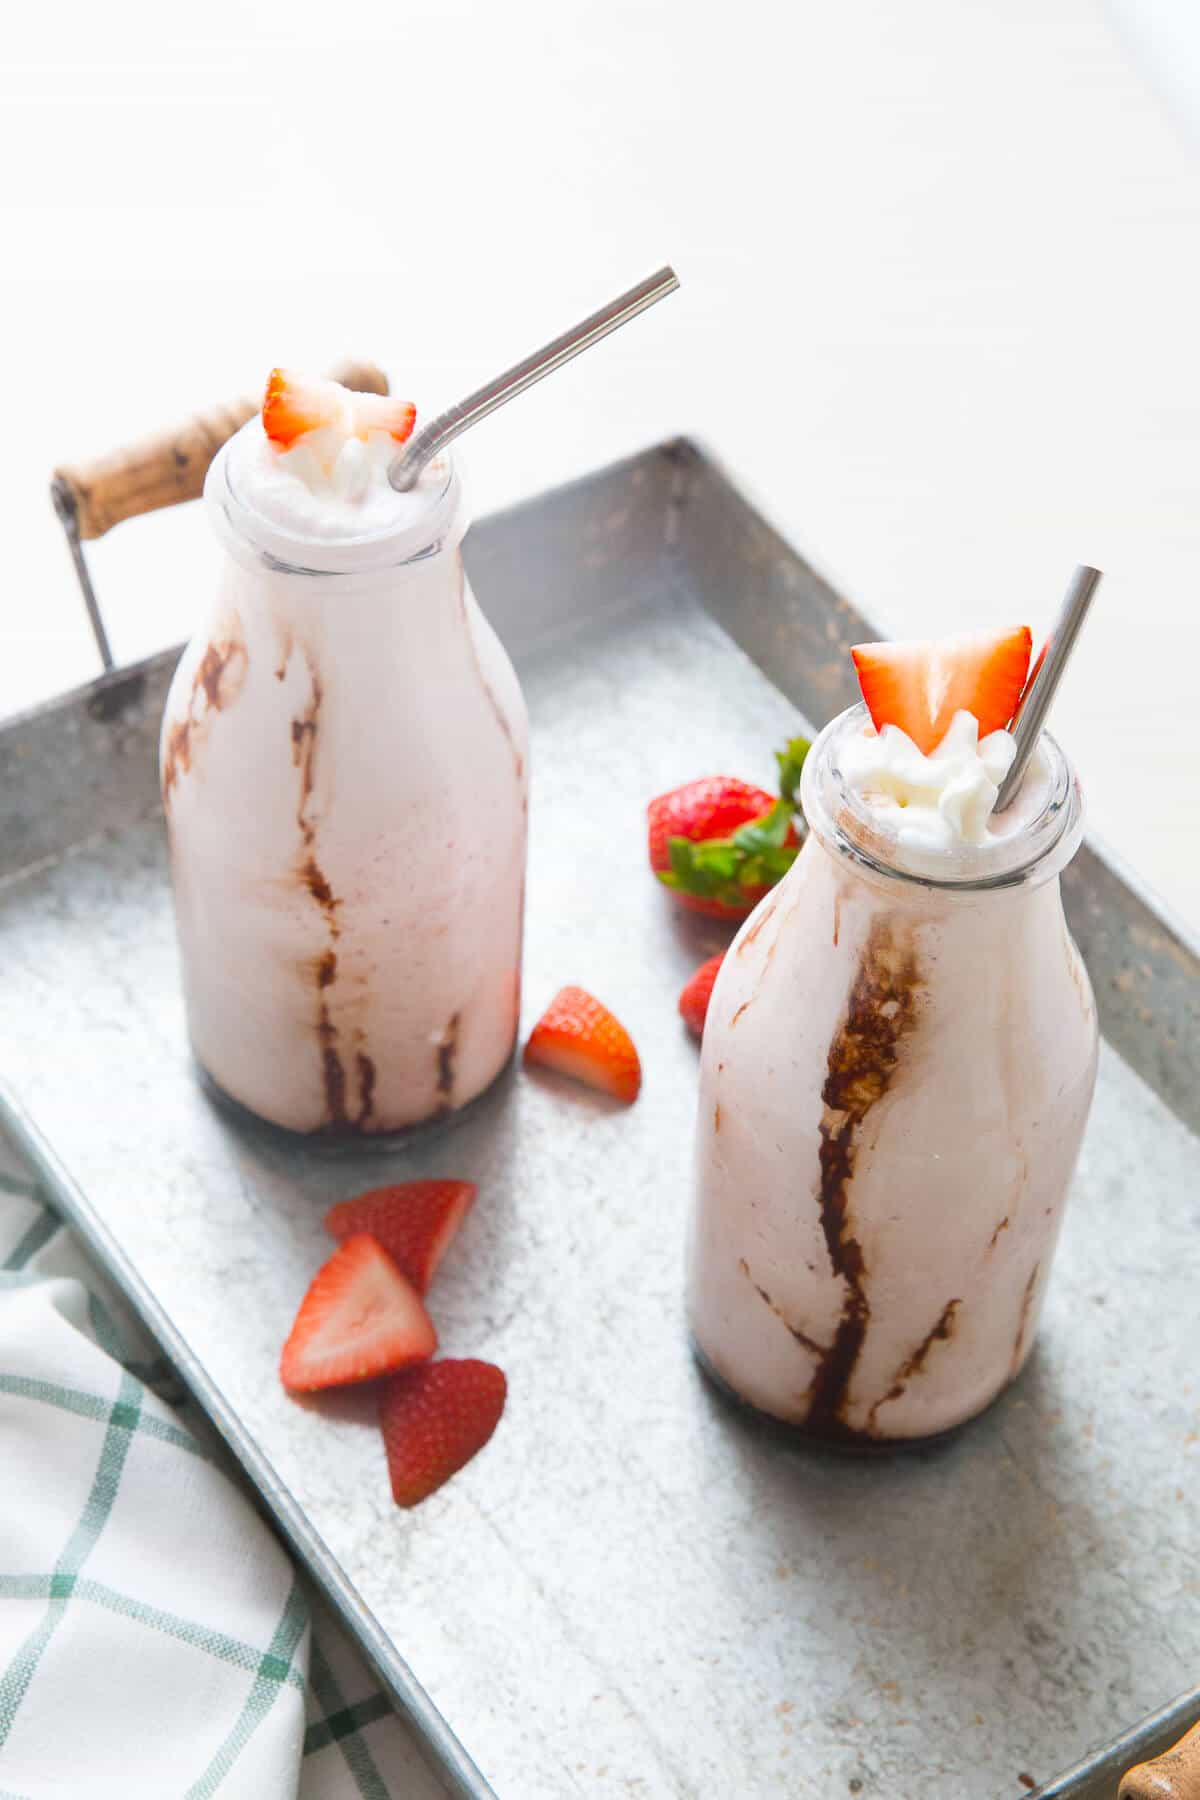 Strawberry milkshakes for everyone! Don't forget the bourbon!